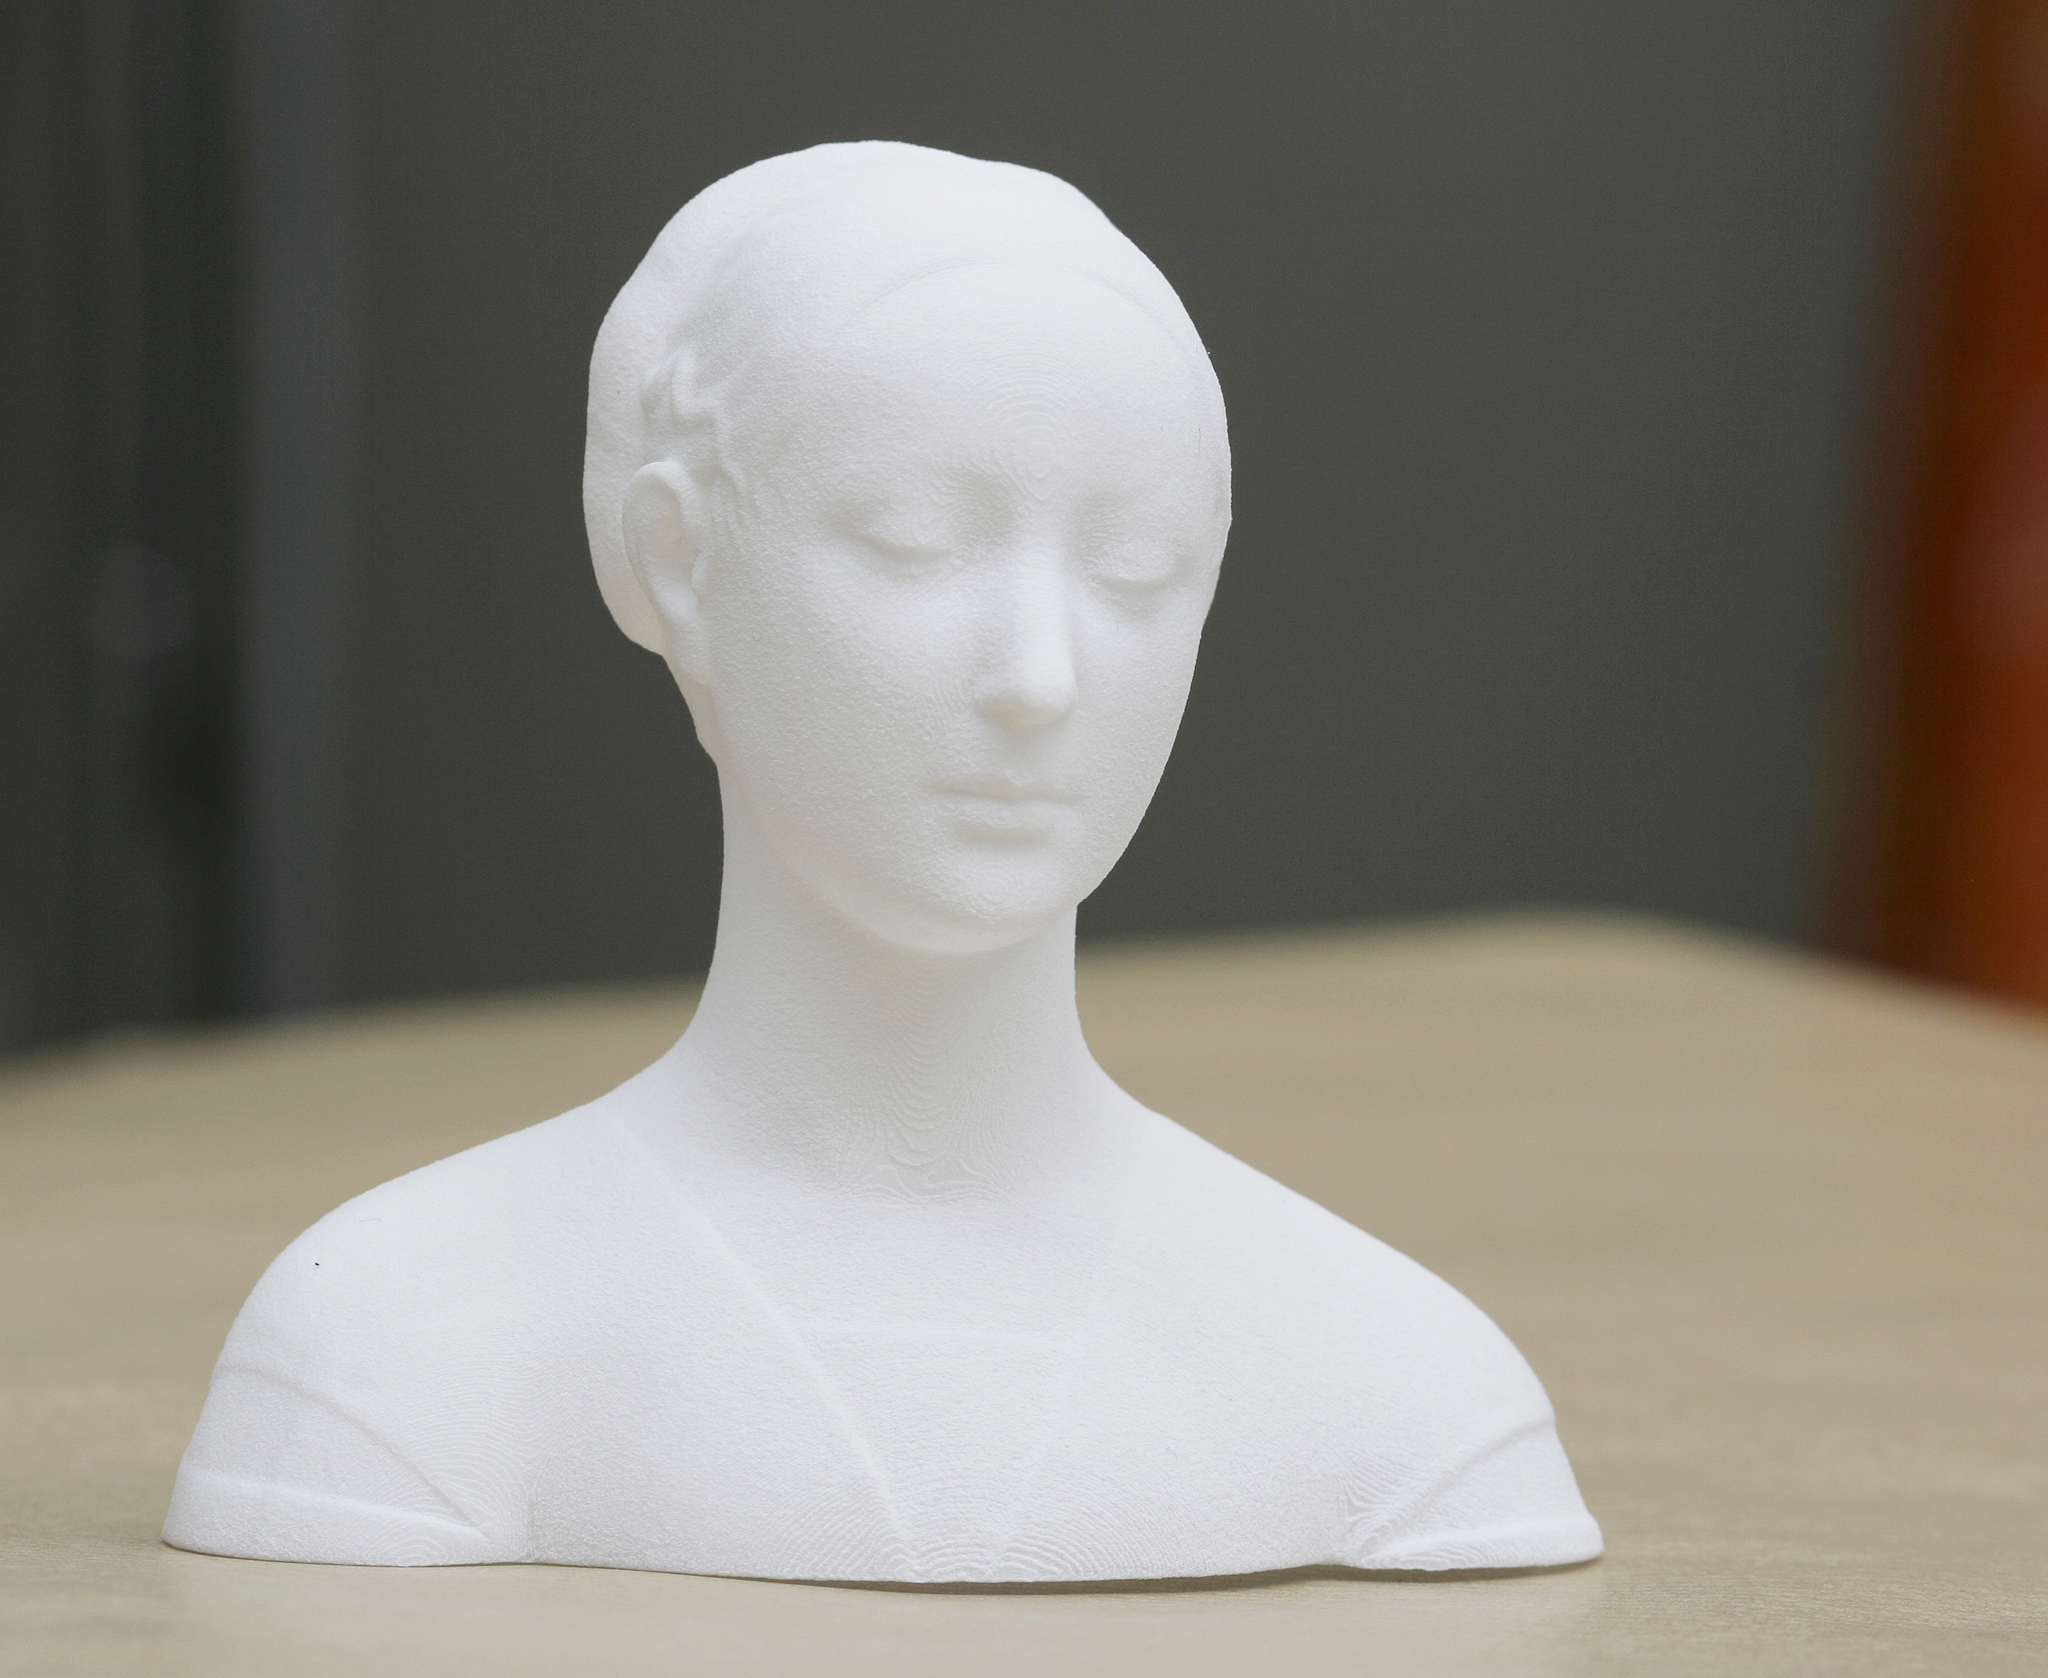 Example of a fully finished SLS 3D printed object. (Source: http://bit.ly/2vCVK20